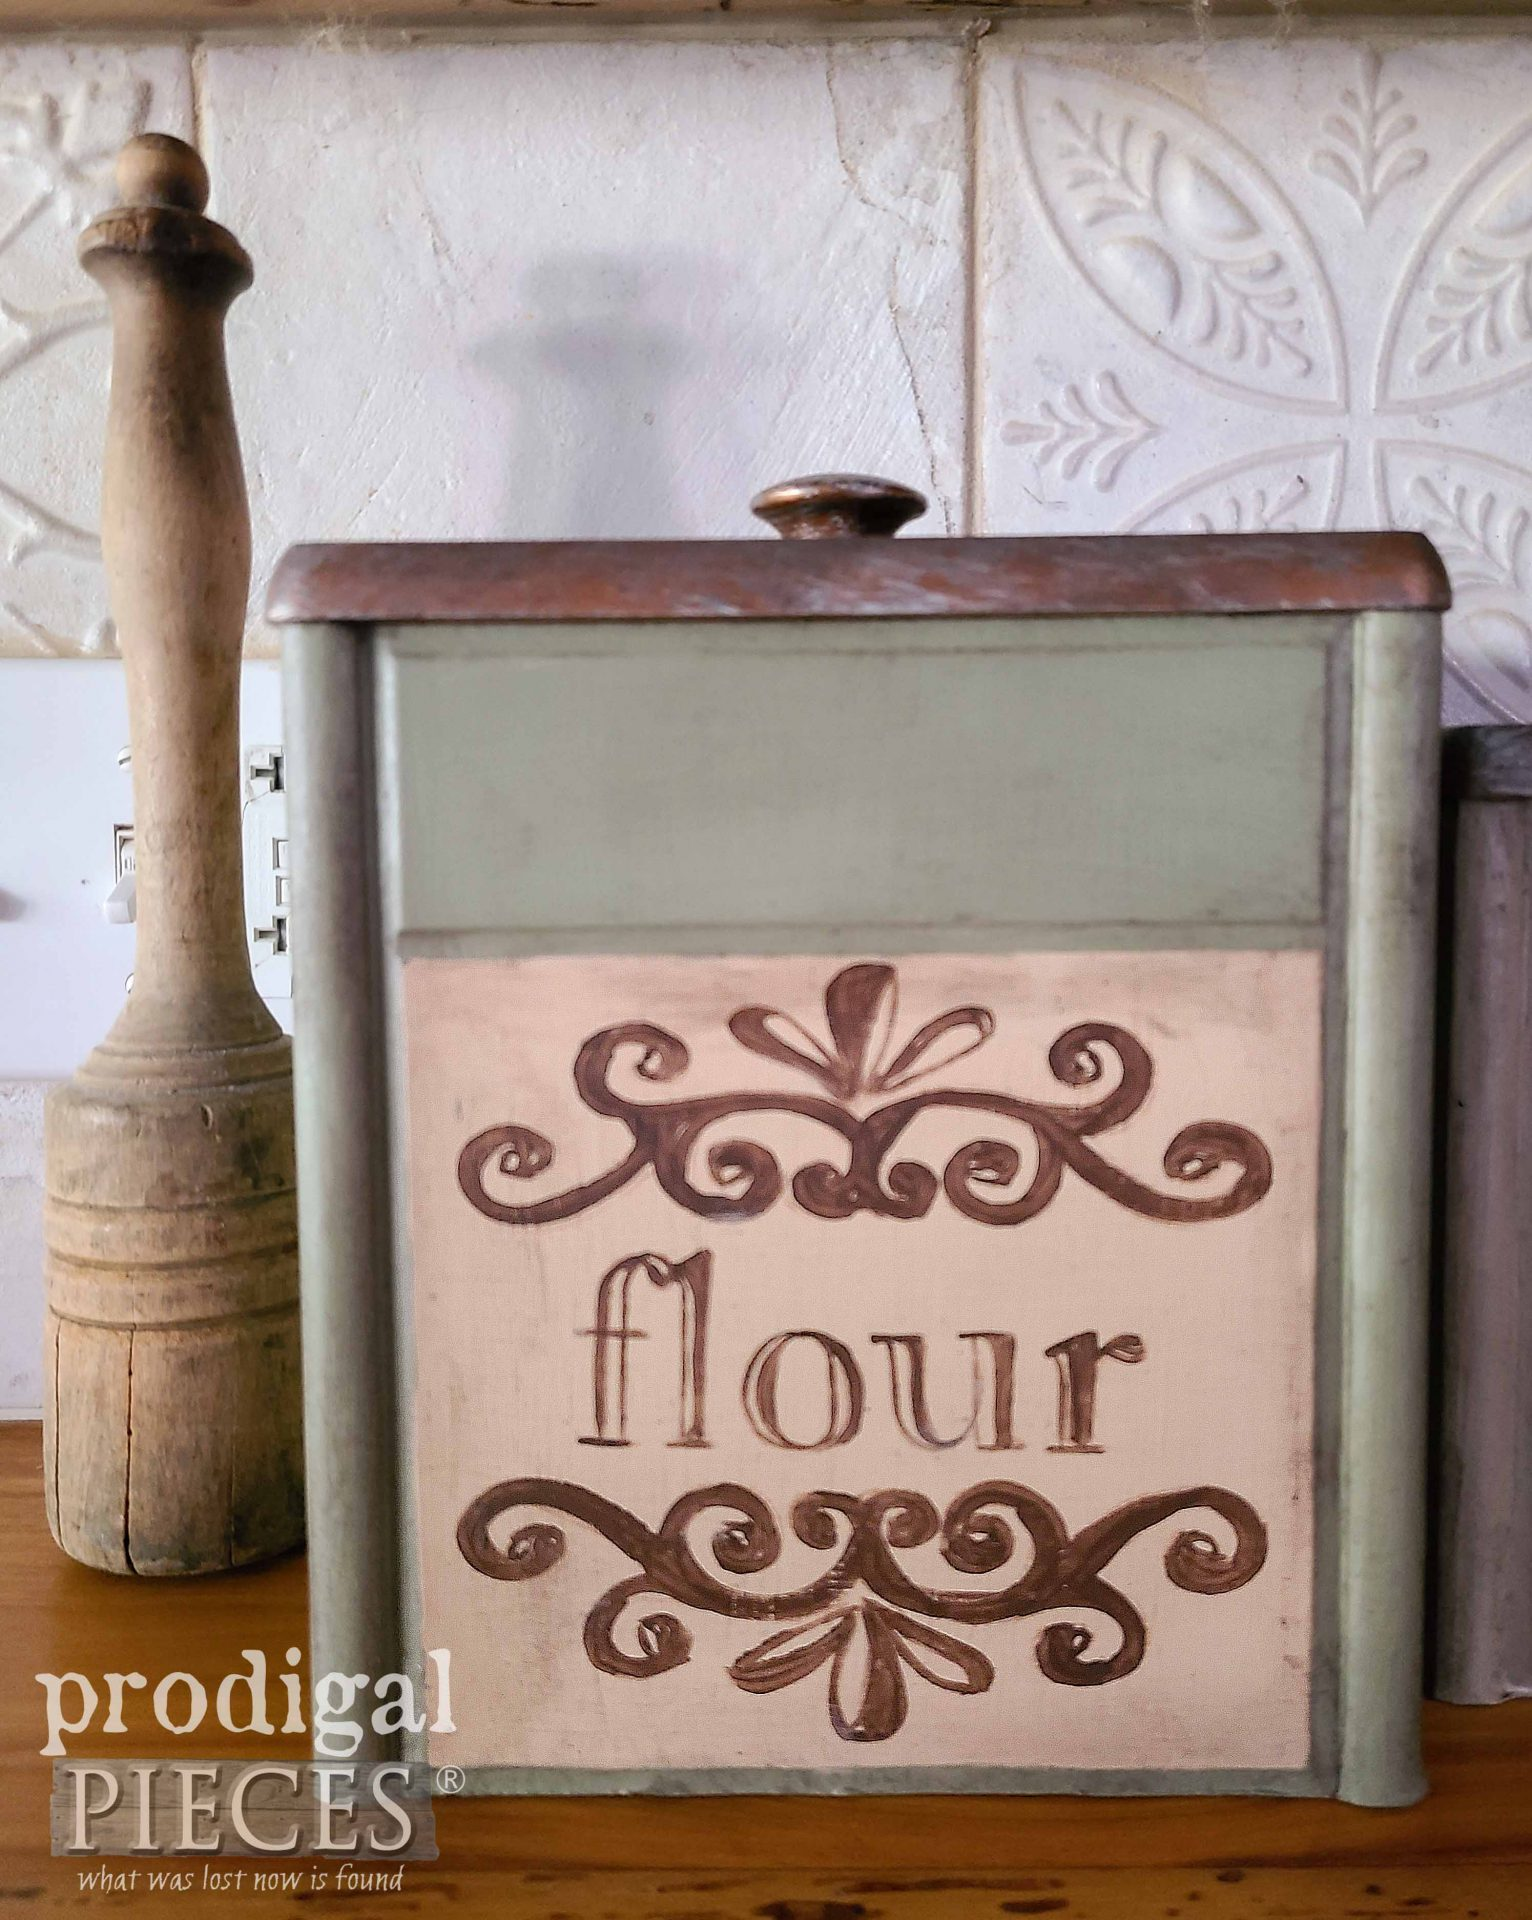 Vintage Flour Canister for Kitchen by Prodigal Pieces | prodigalpieces.com #prodigalpieces #farmhouse #kitchen #home